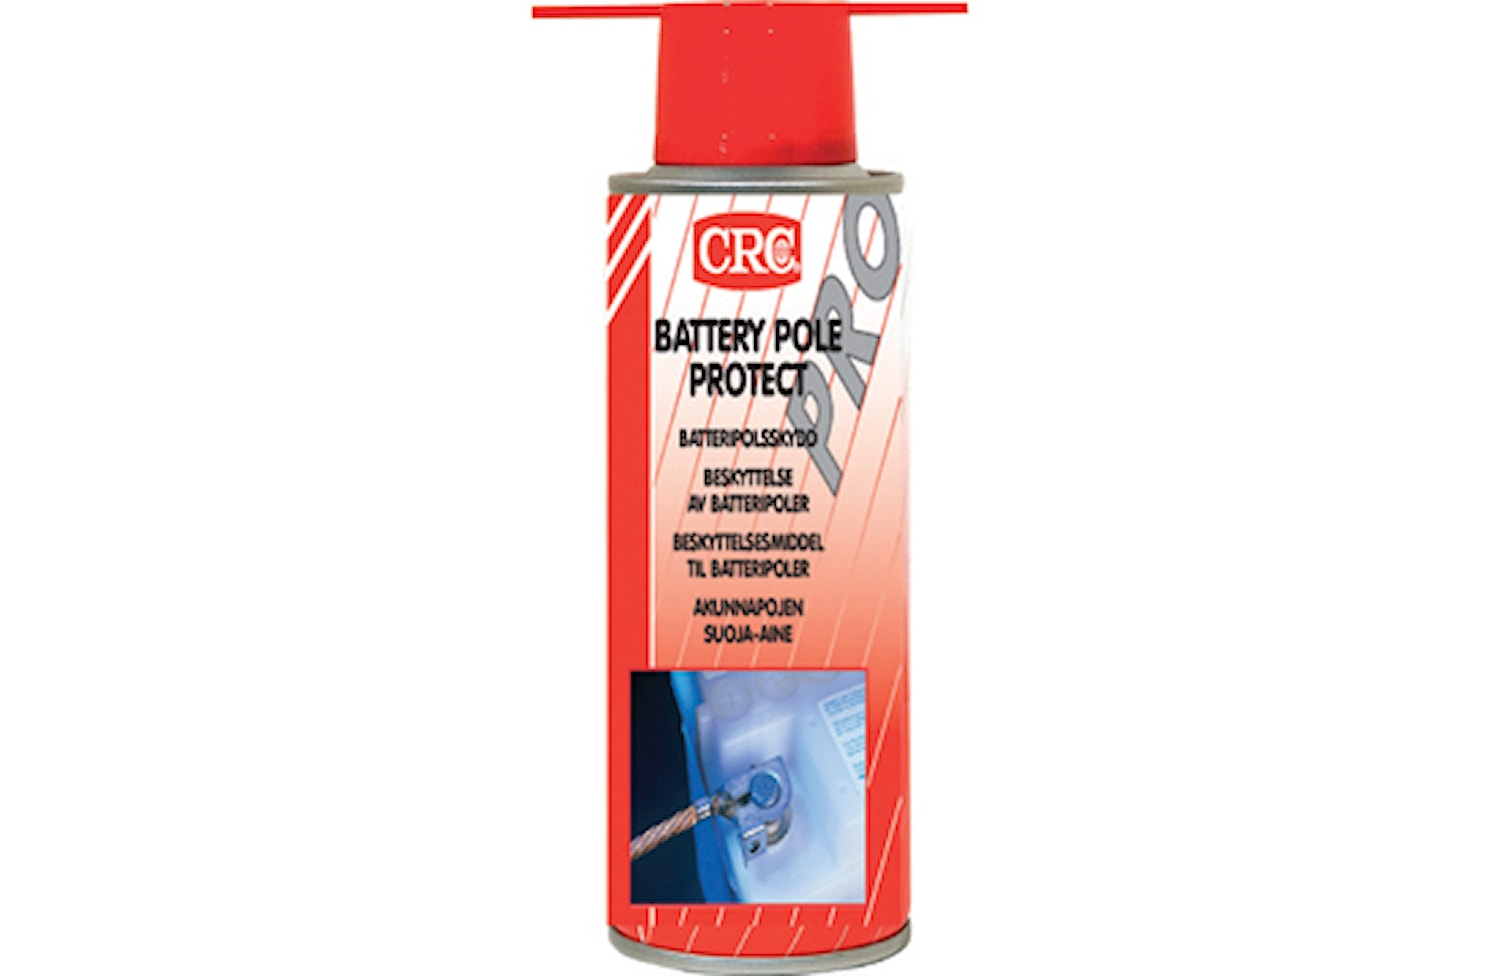 CRC Battery Pole Protect 200ml